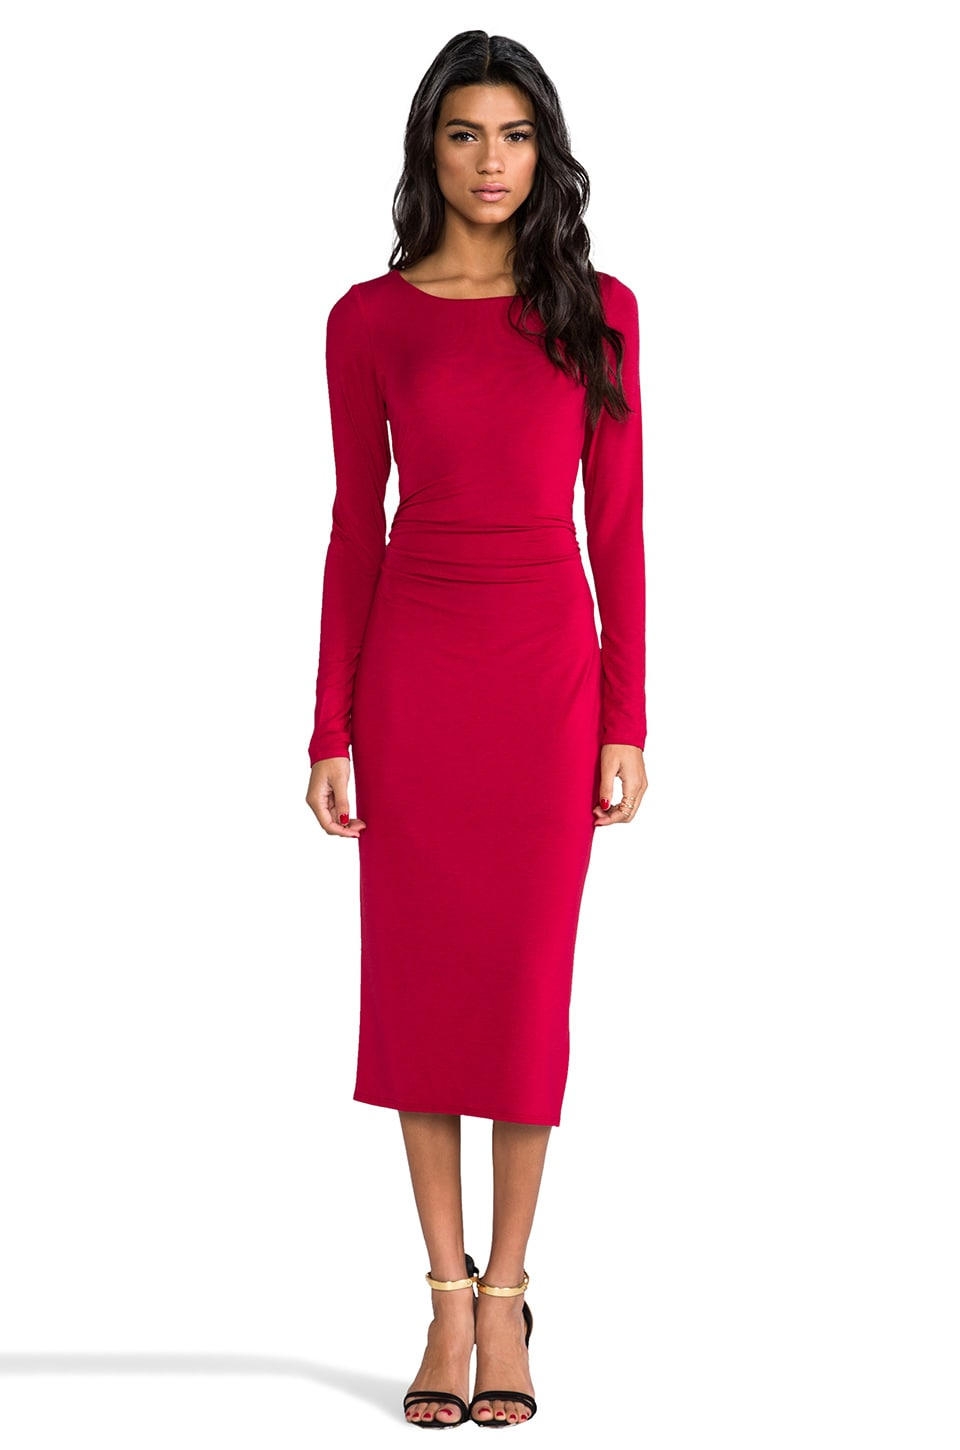 Heather Open Back Midi Dress in Heather Capri